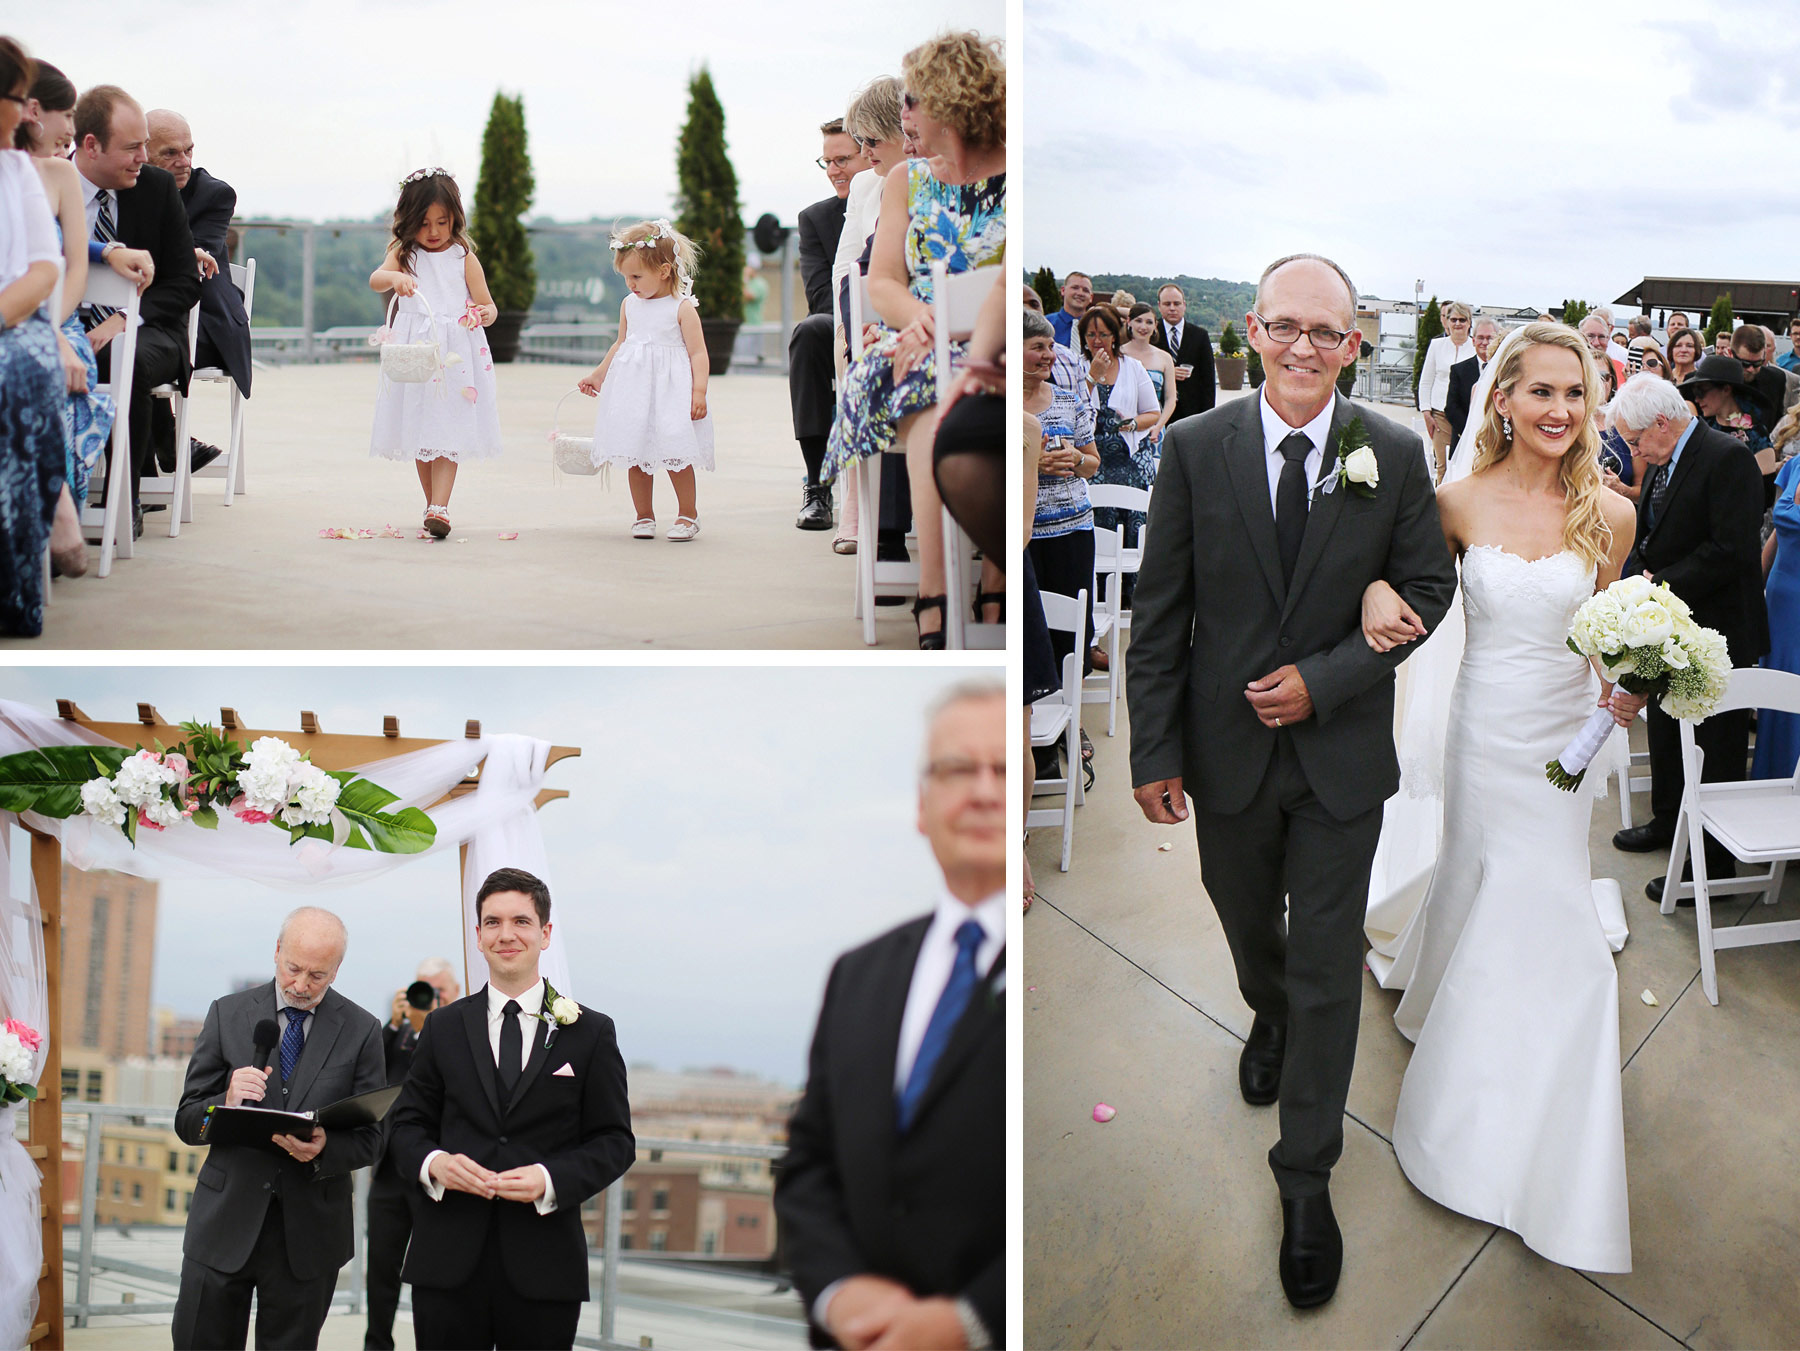 11-Saint-Paul-Minnesota-Wedding-Photographer-by-Andrew-Vick-Photography-Summer-Abulae-Ceremony-Flower-Girls-Groom-Bride-Parents-Dress-Flowers-Laura-and-Tim.jpg